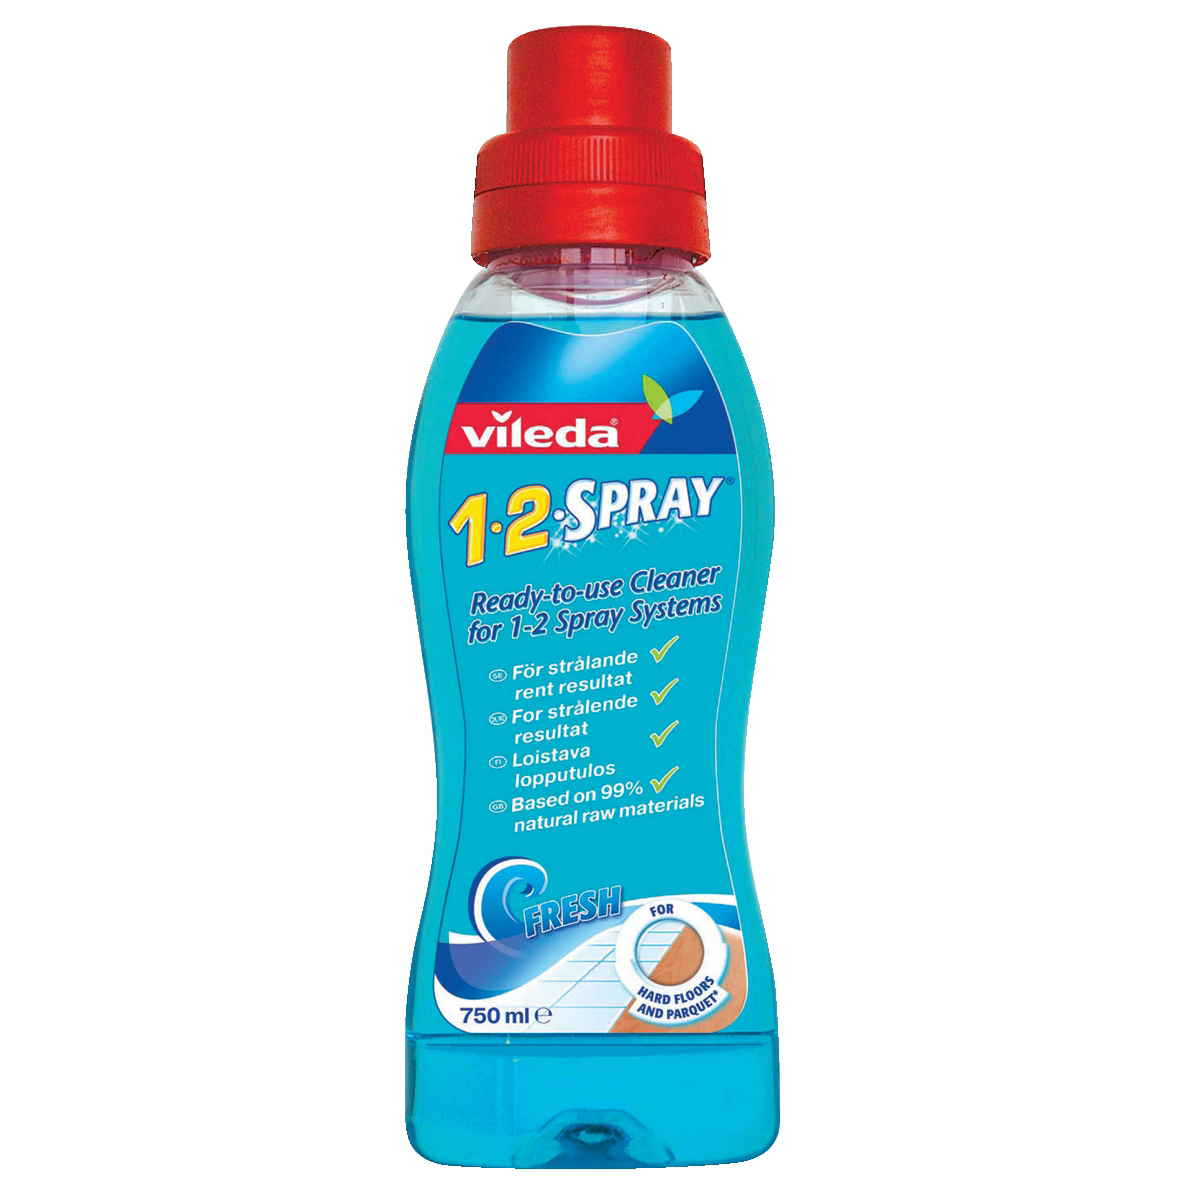 Vileda Cleaning Solution Refill for 1-2 Spray and Clean Mop System Ref N07555